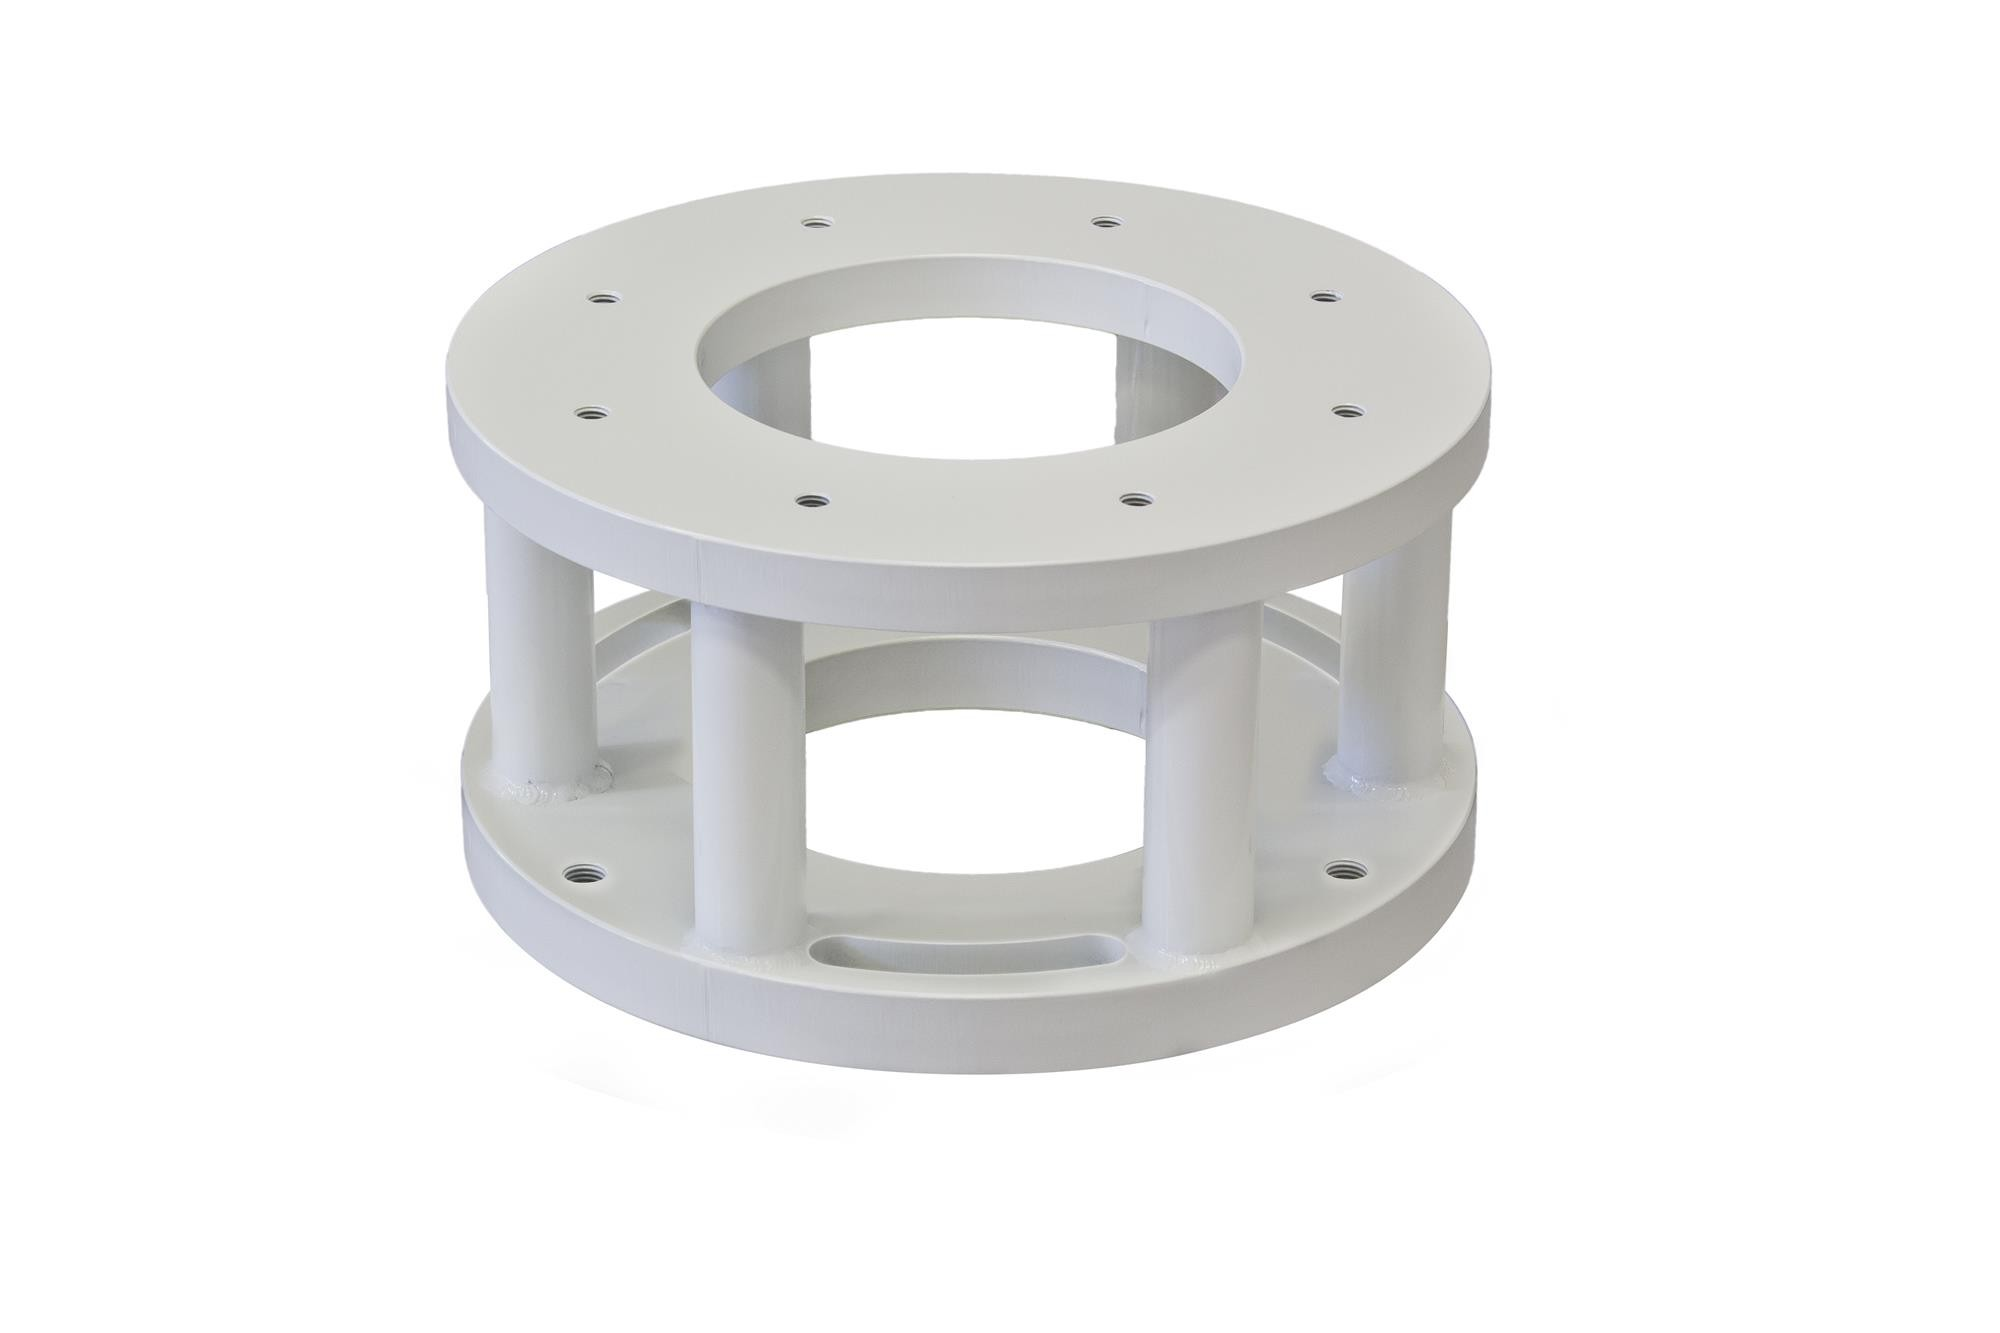 Baader Heavy Pillar (BHP) Levelling Flange for GM 4000 and PlaneWave L-350, Height 10cm